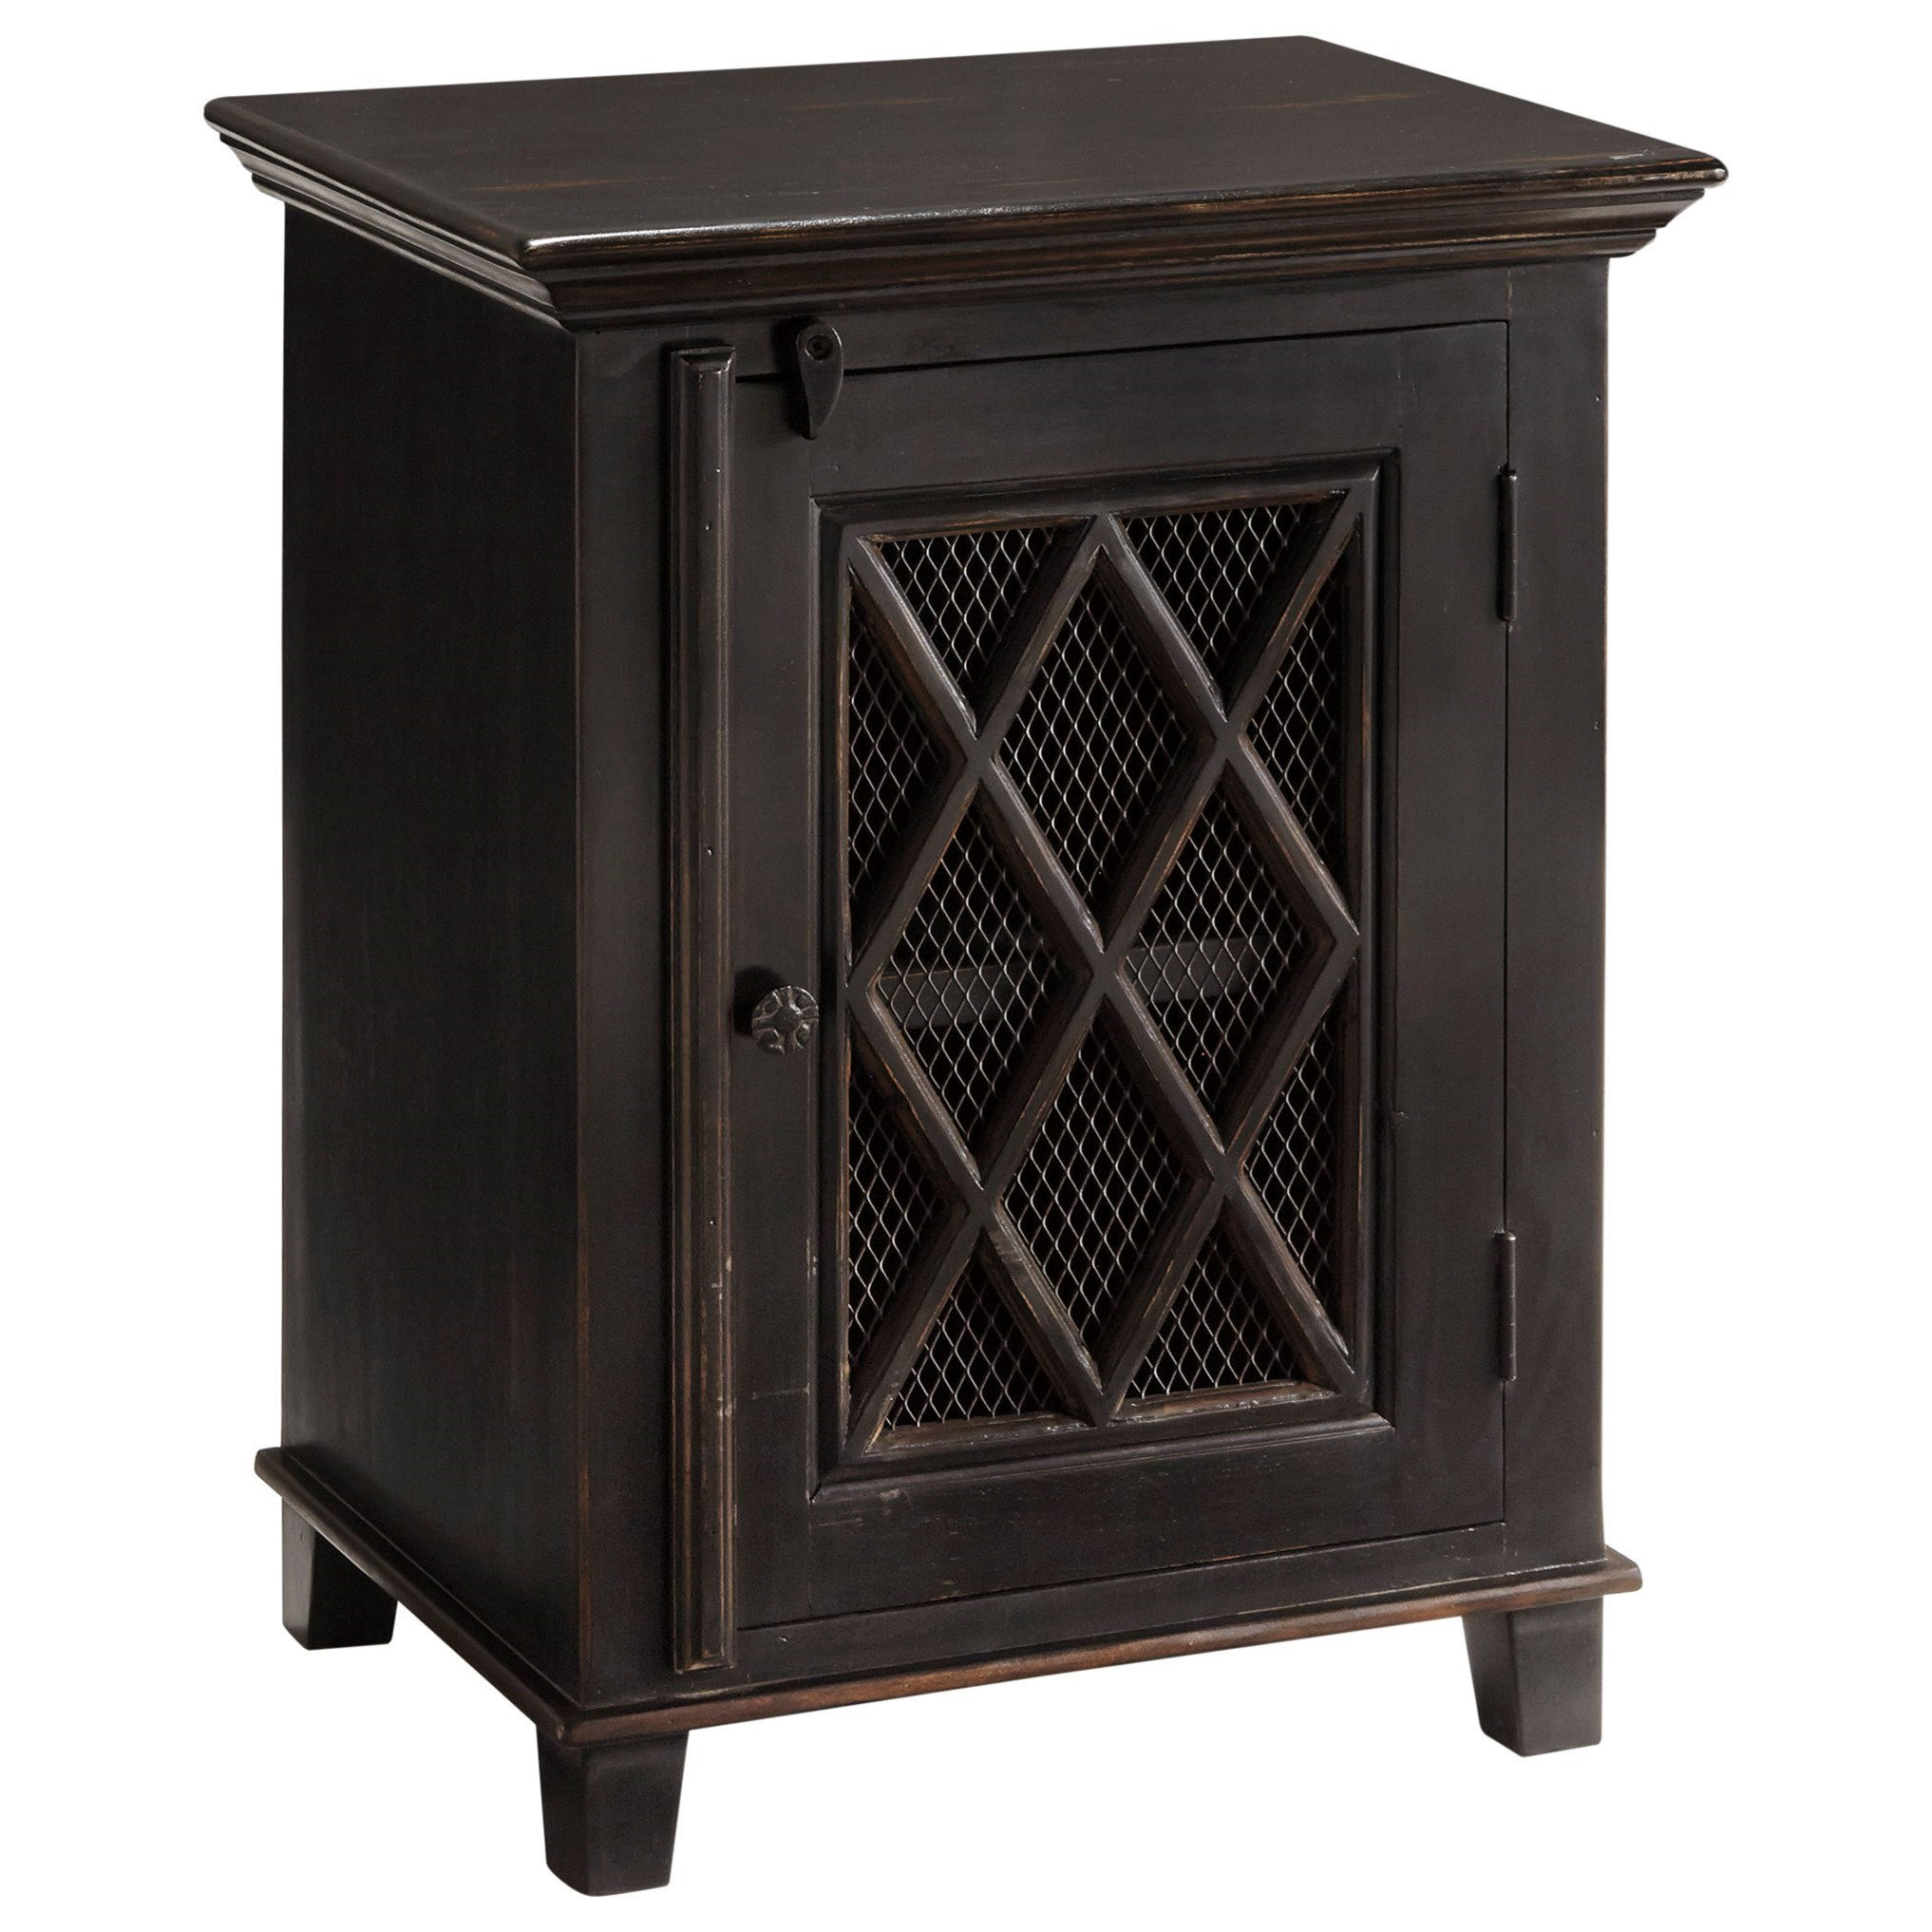 Signature Design by Ashley Charlowe Night Stand - Item Number: B013-191